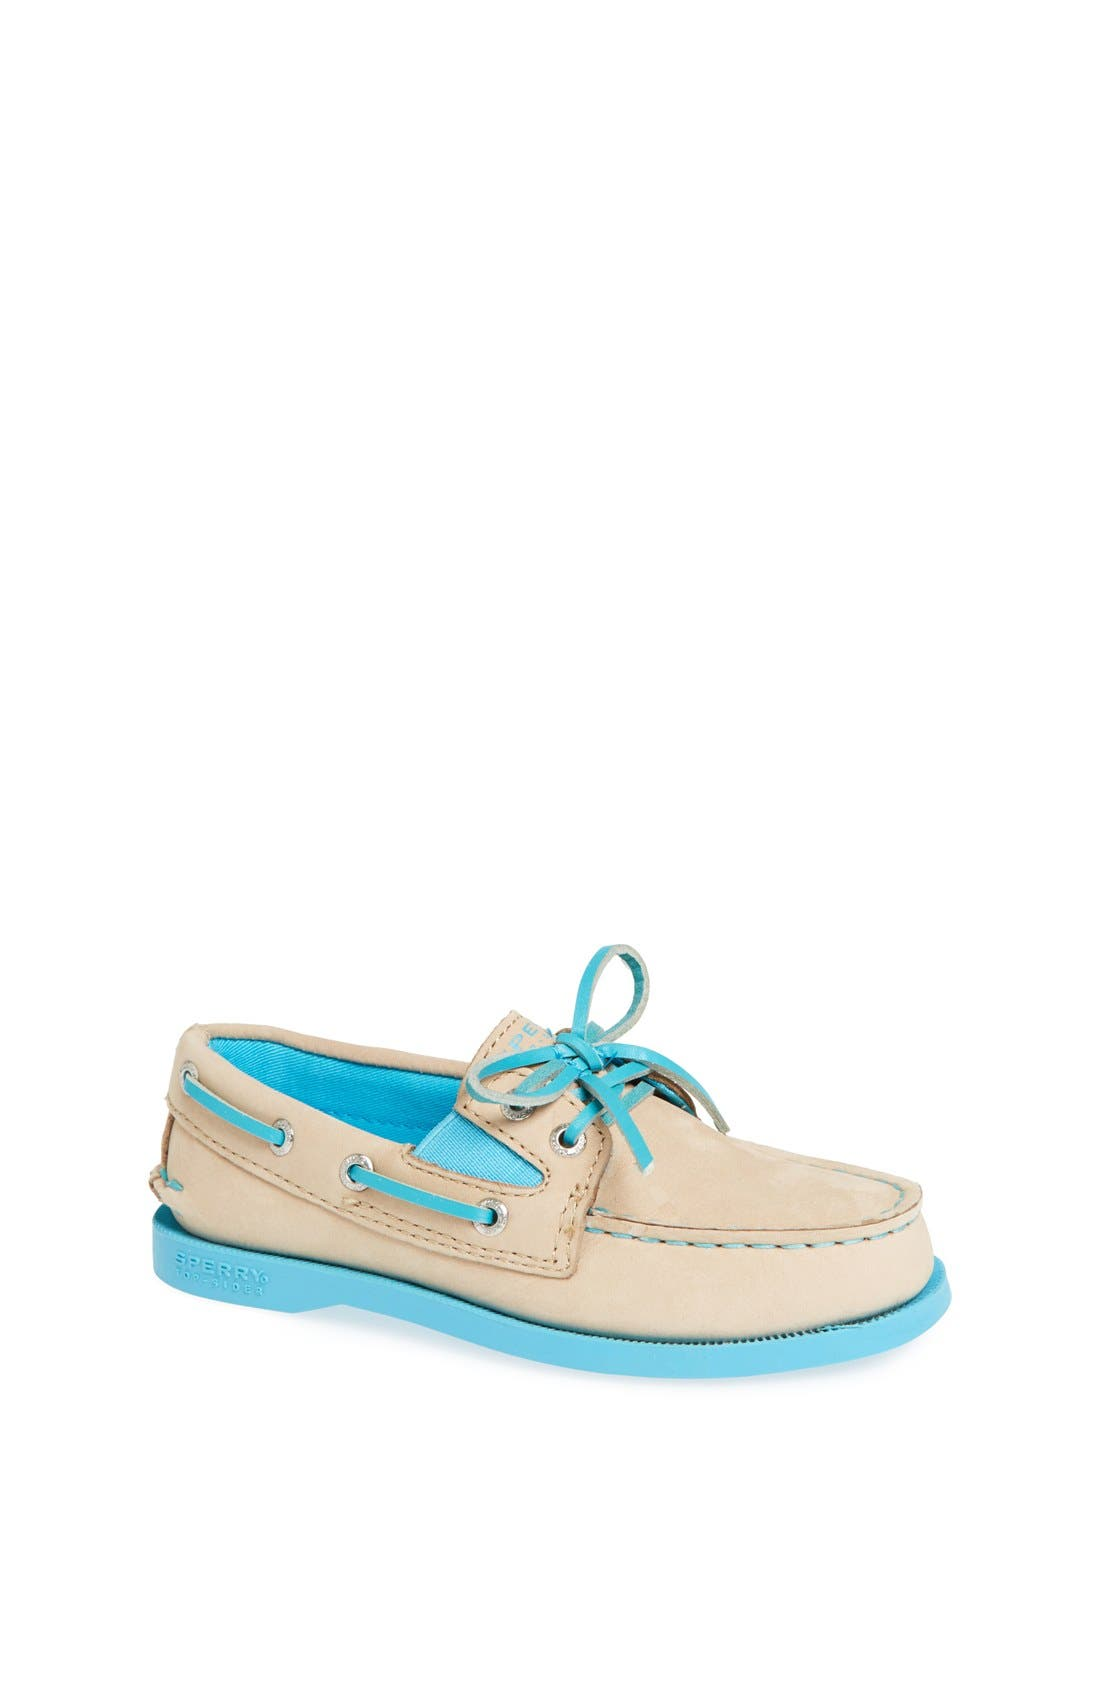 Alternate Image 1 Selected - Sperry Top-Sider® Kids 'Authentic Original' Boat Shoe (Walker, Toddler, Little Kid & Big Kid)